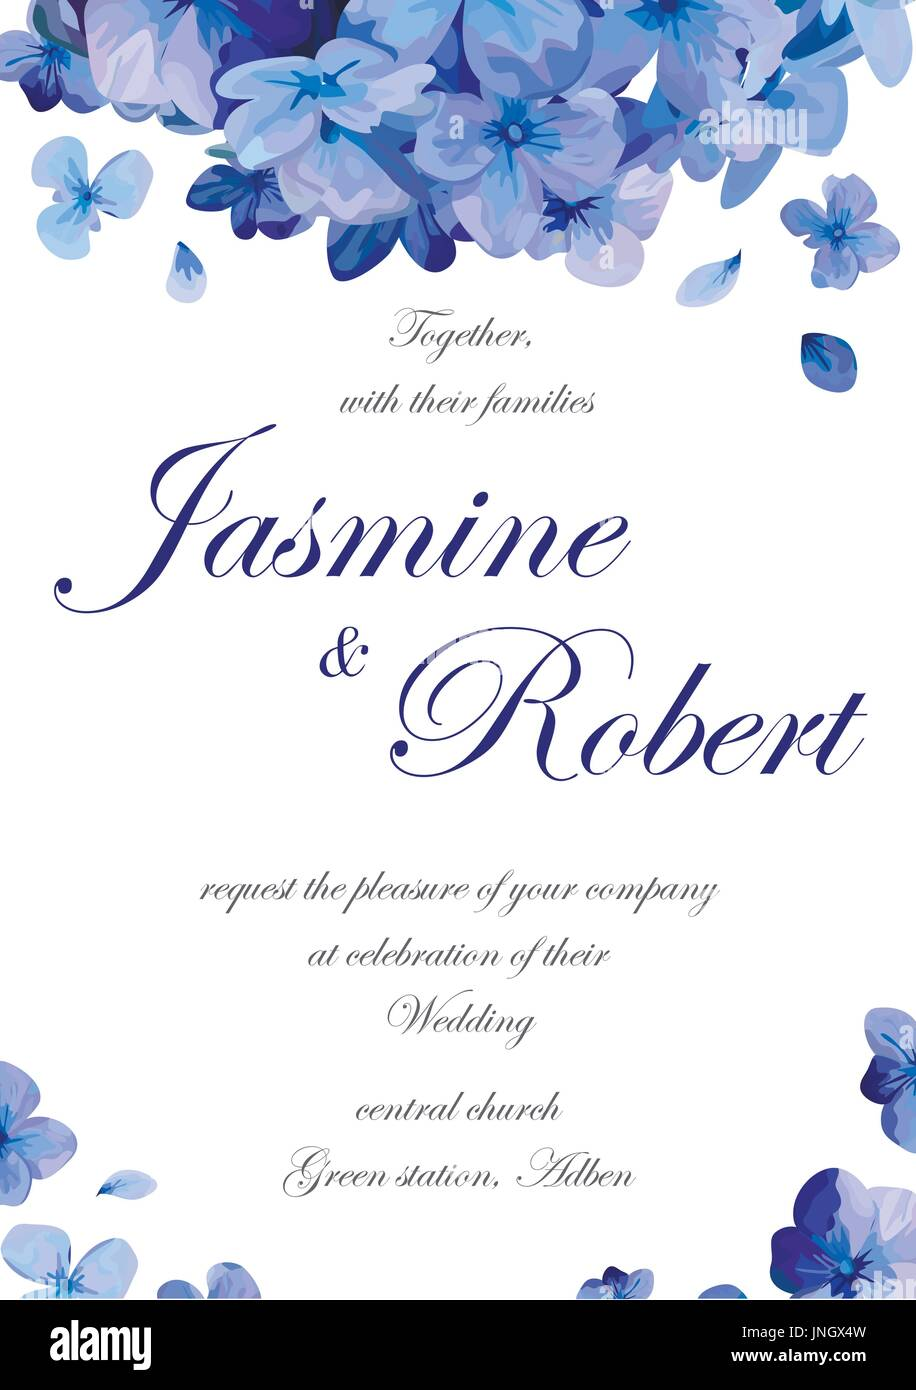 Wedding invitation flower invite card design with blue purple garden wedding invitation flower invite card design with blue purple garden hydrangea flower hortensia flowers romantic poster banner vector vertical anniv stopboris Images